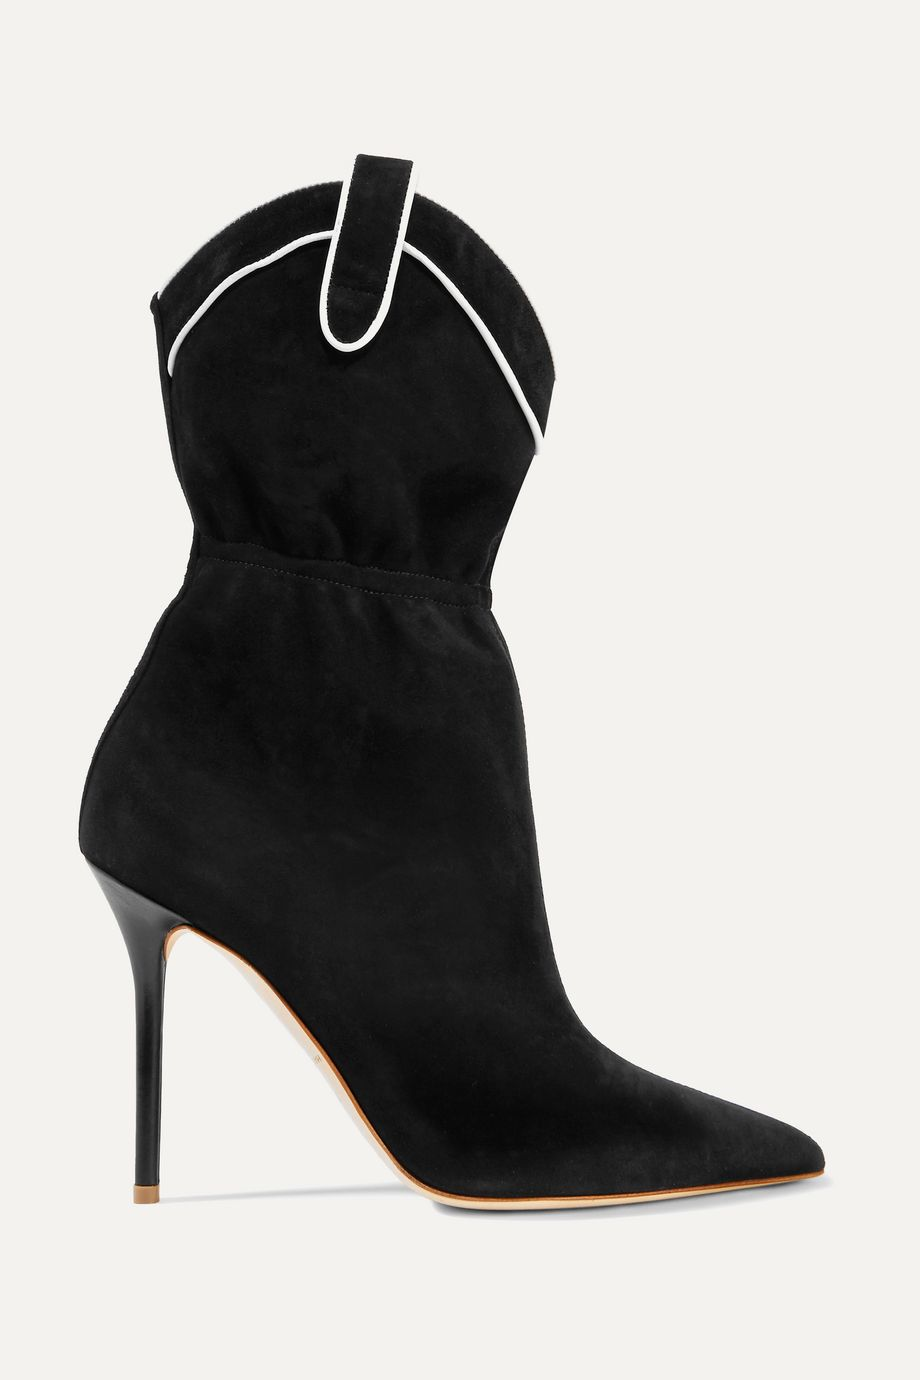 Malone Souliers Daisy 100 suede ankle boots